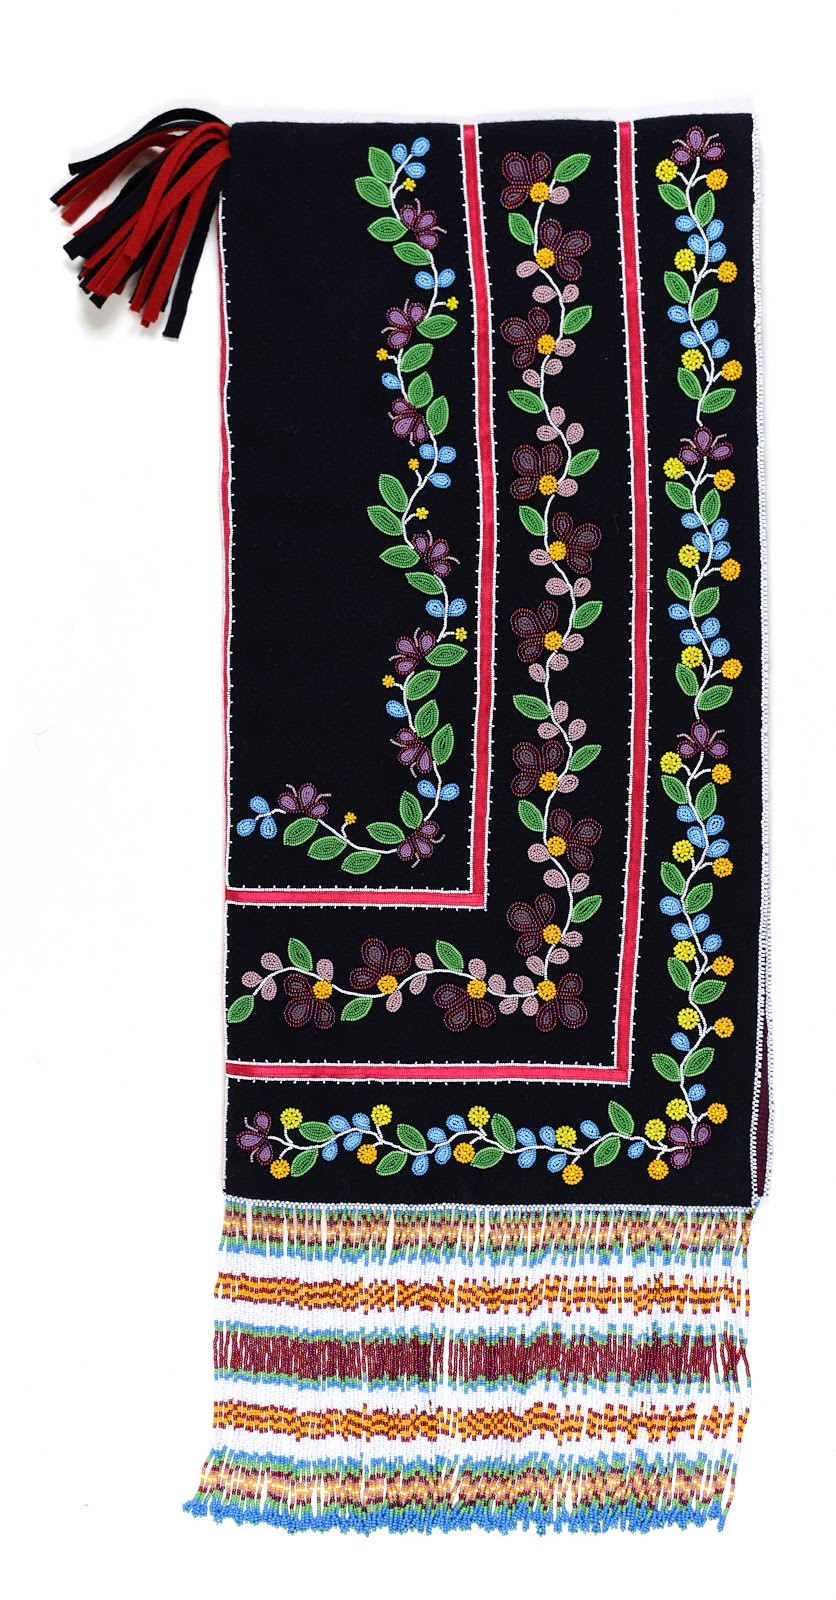 Black beaded fabric with floral design